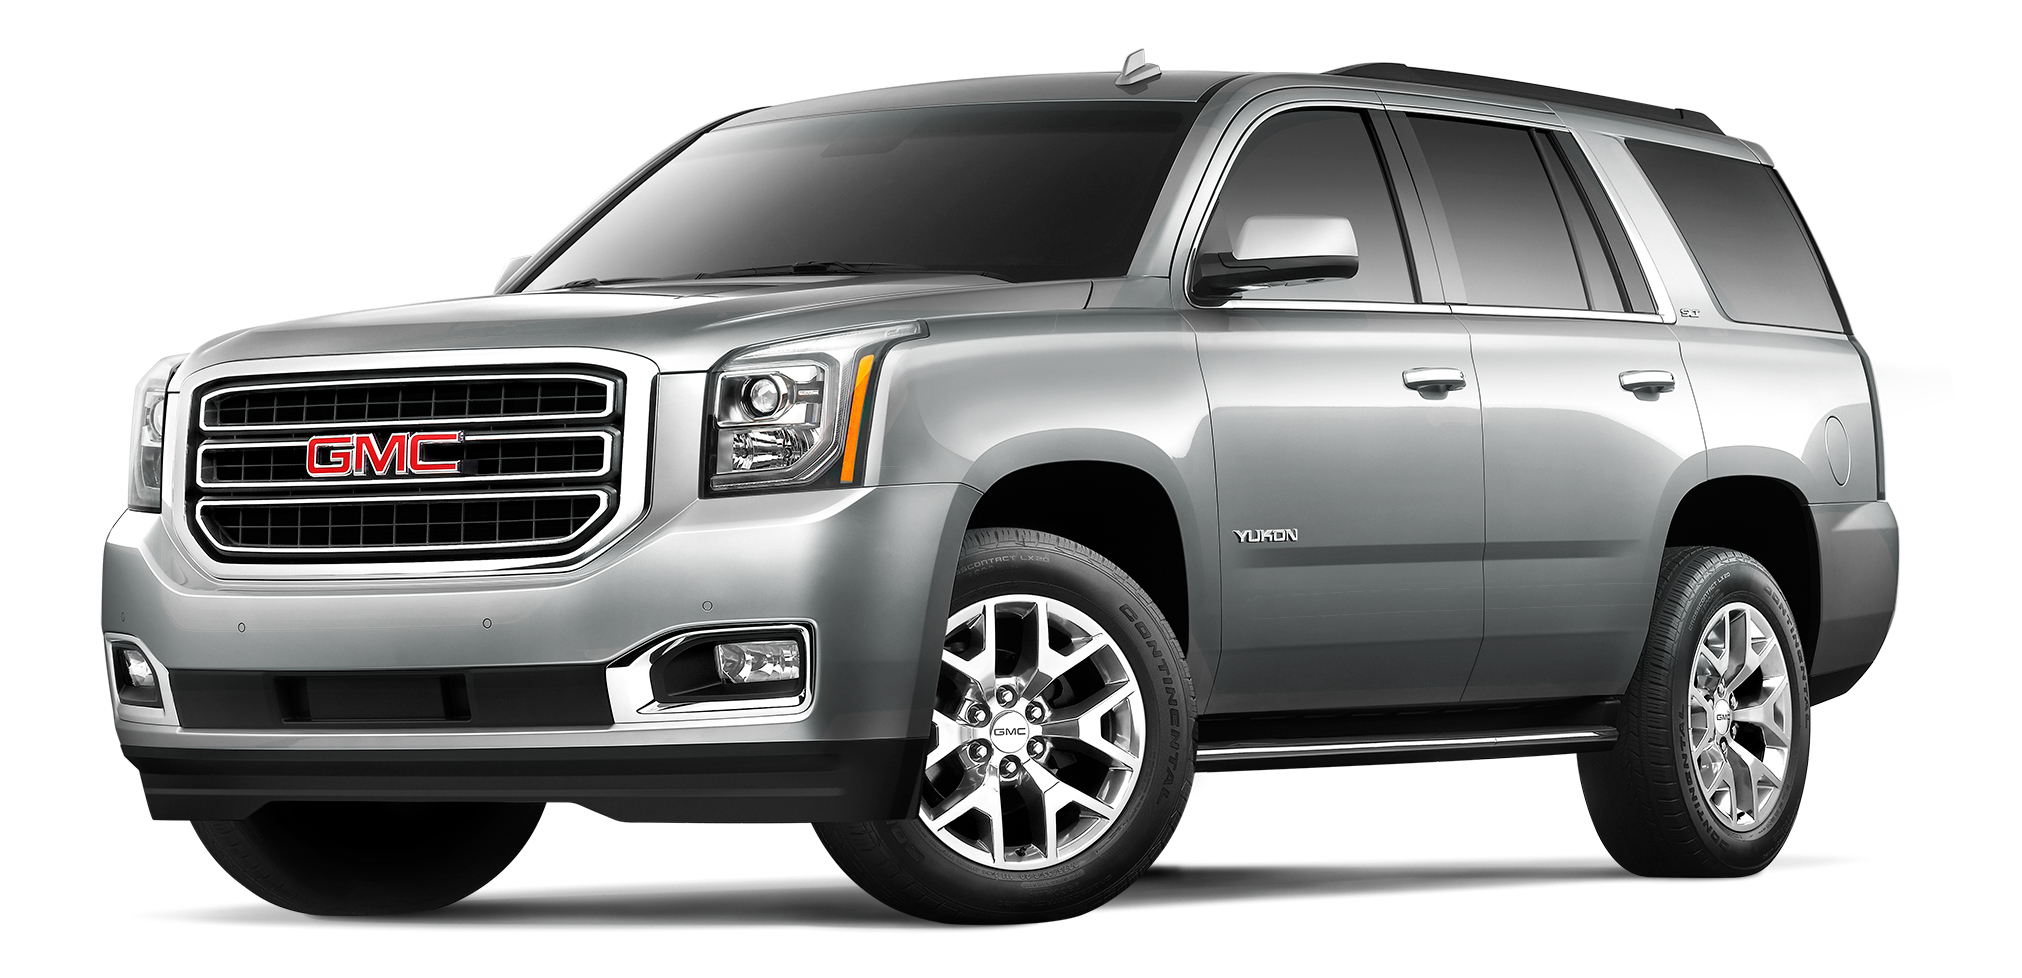 2017 gmc yukon winnipeg gmc yukon details specs gauthier. Black Bedroom Furniture Sets. Home Design Ideas